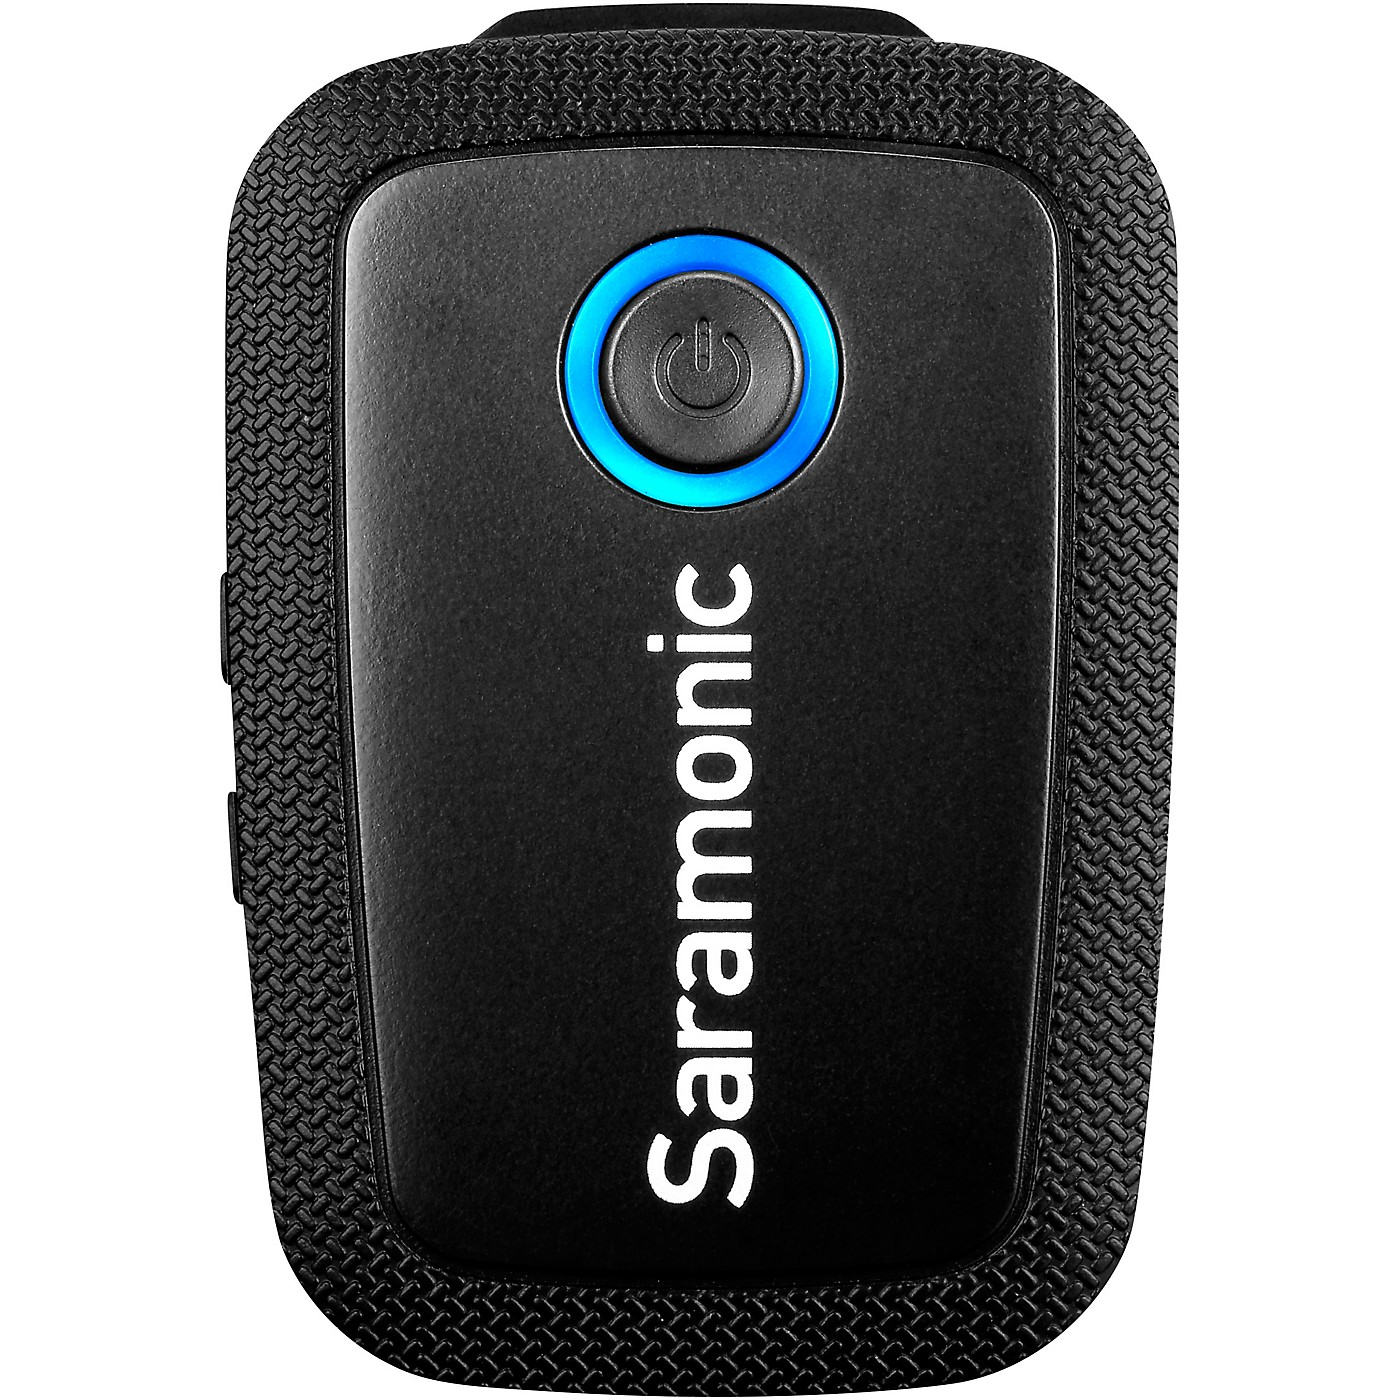 Saramonic Blink 500 TX Ultracompact Wireless Microphone Clip-On Transmitter thumbnail